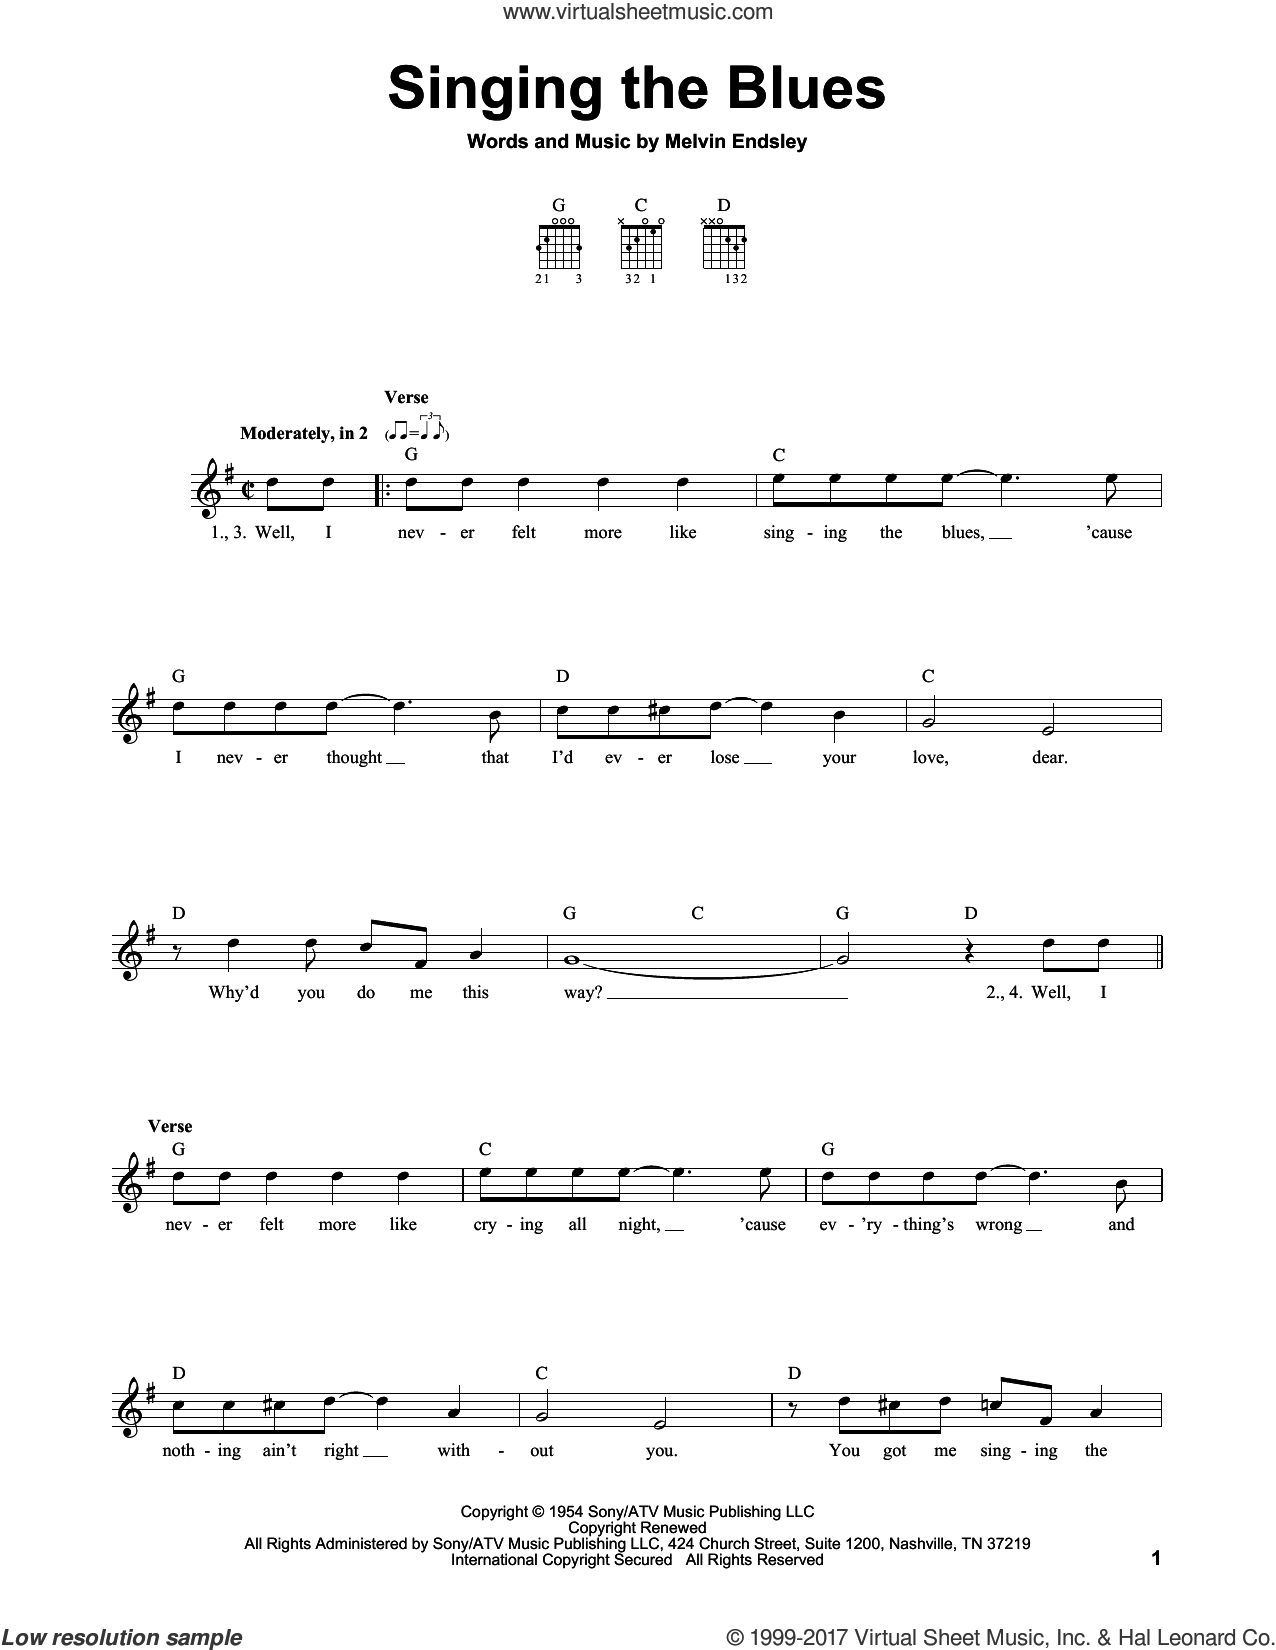 Singing The Blues sheet music for guitar solo (chords) by Marty Robbins, Guy Mitchell and Melvin Endsley, easy guitar (chords)